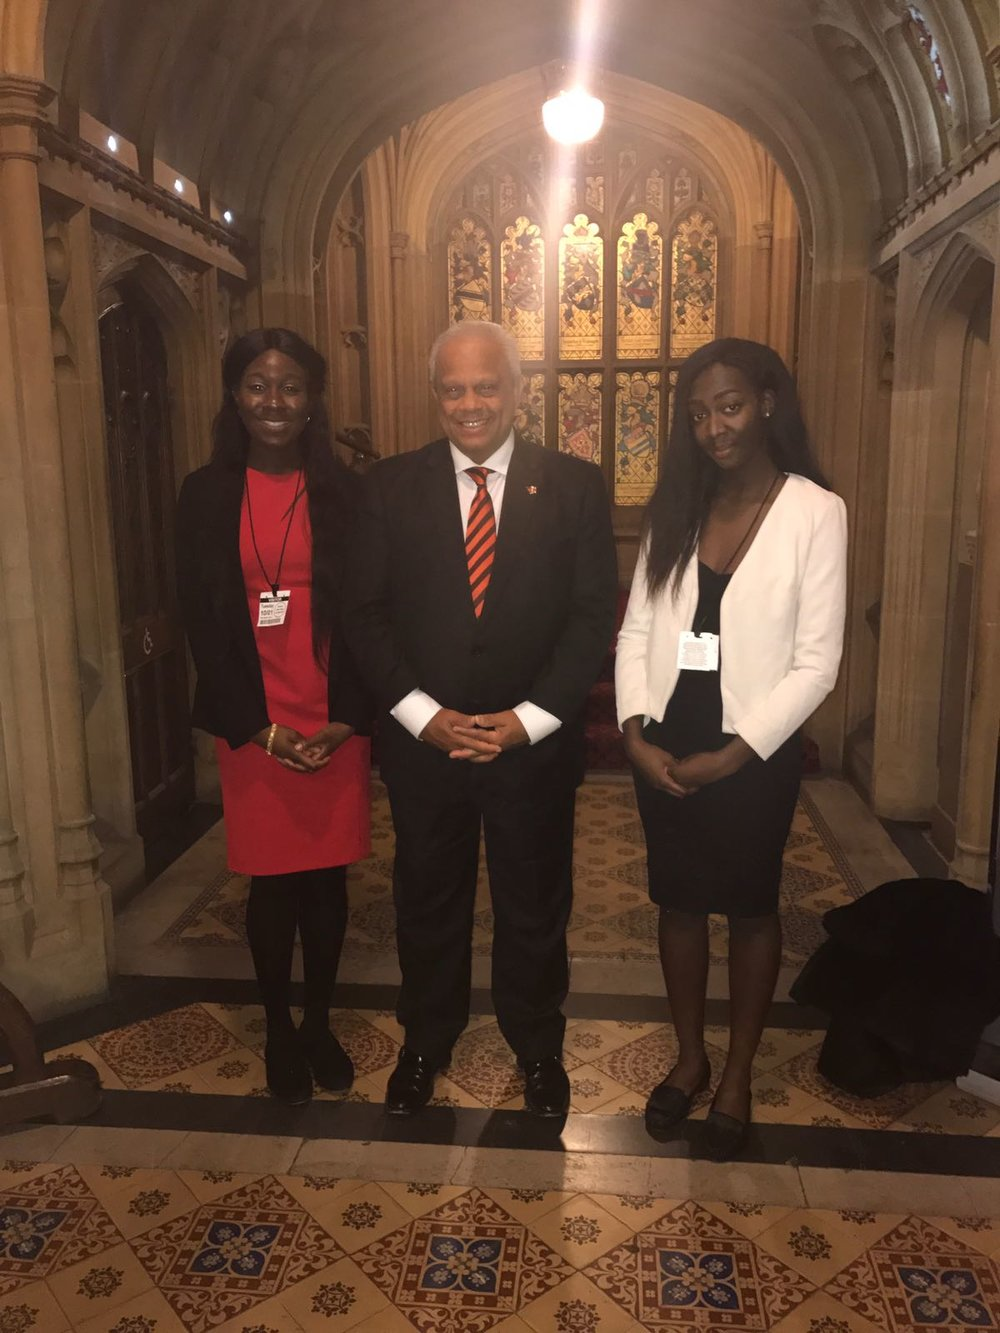 Dinner at The House of Lords - 10/01/16